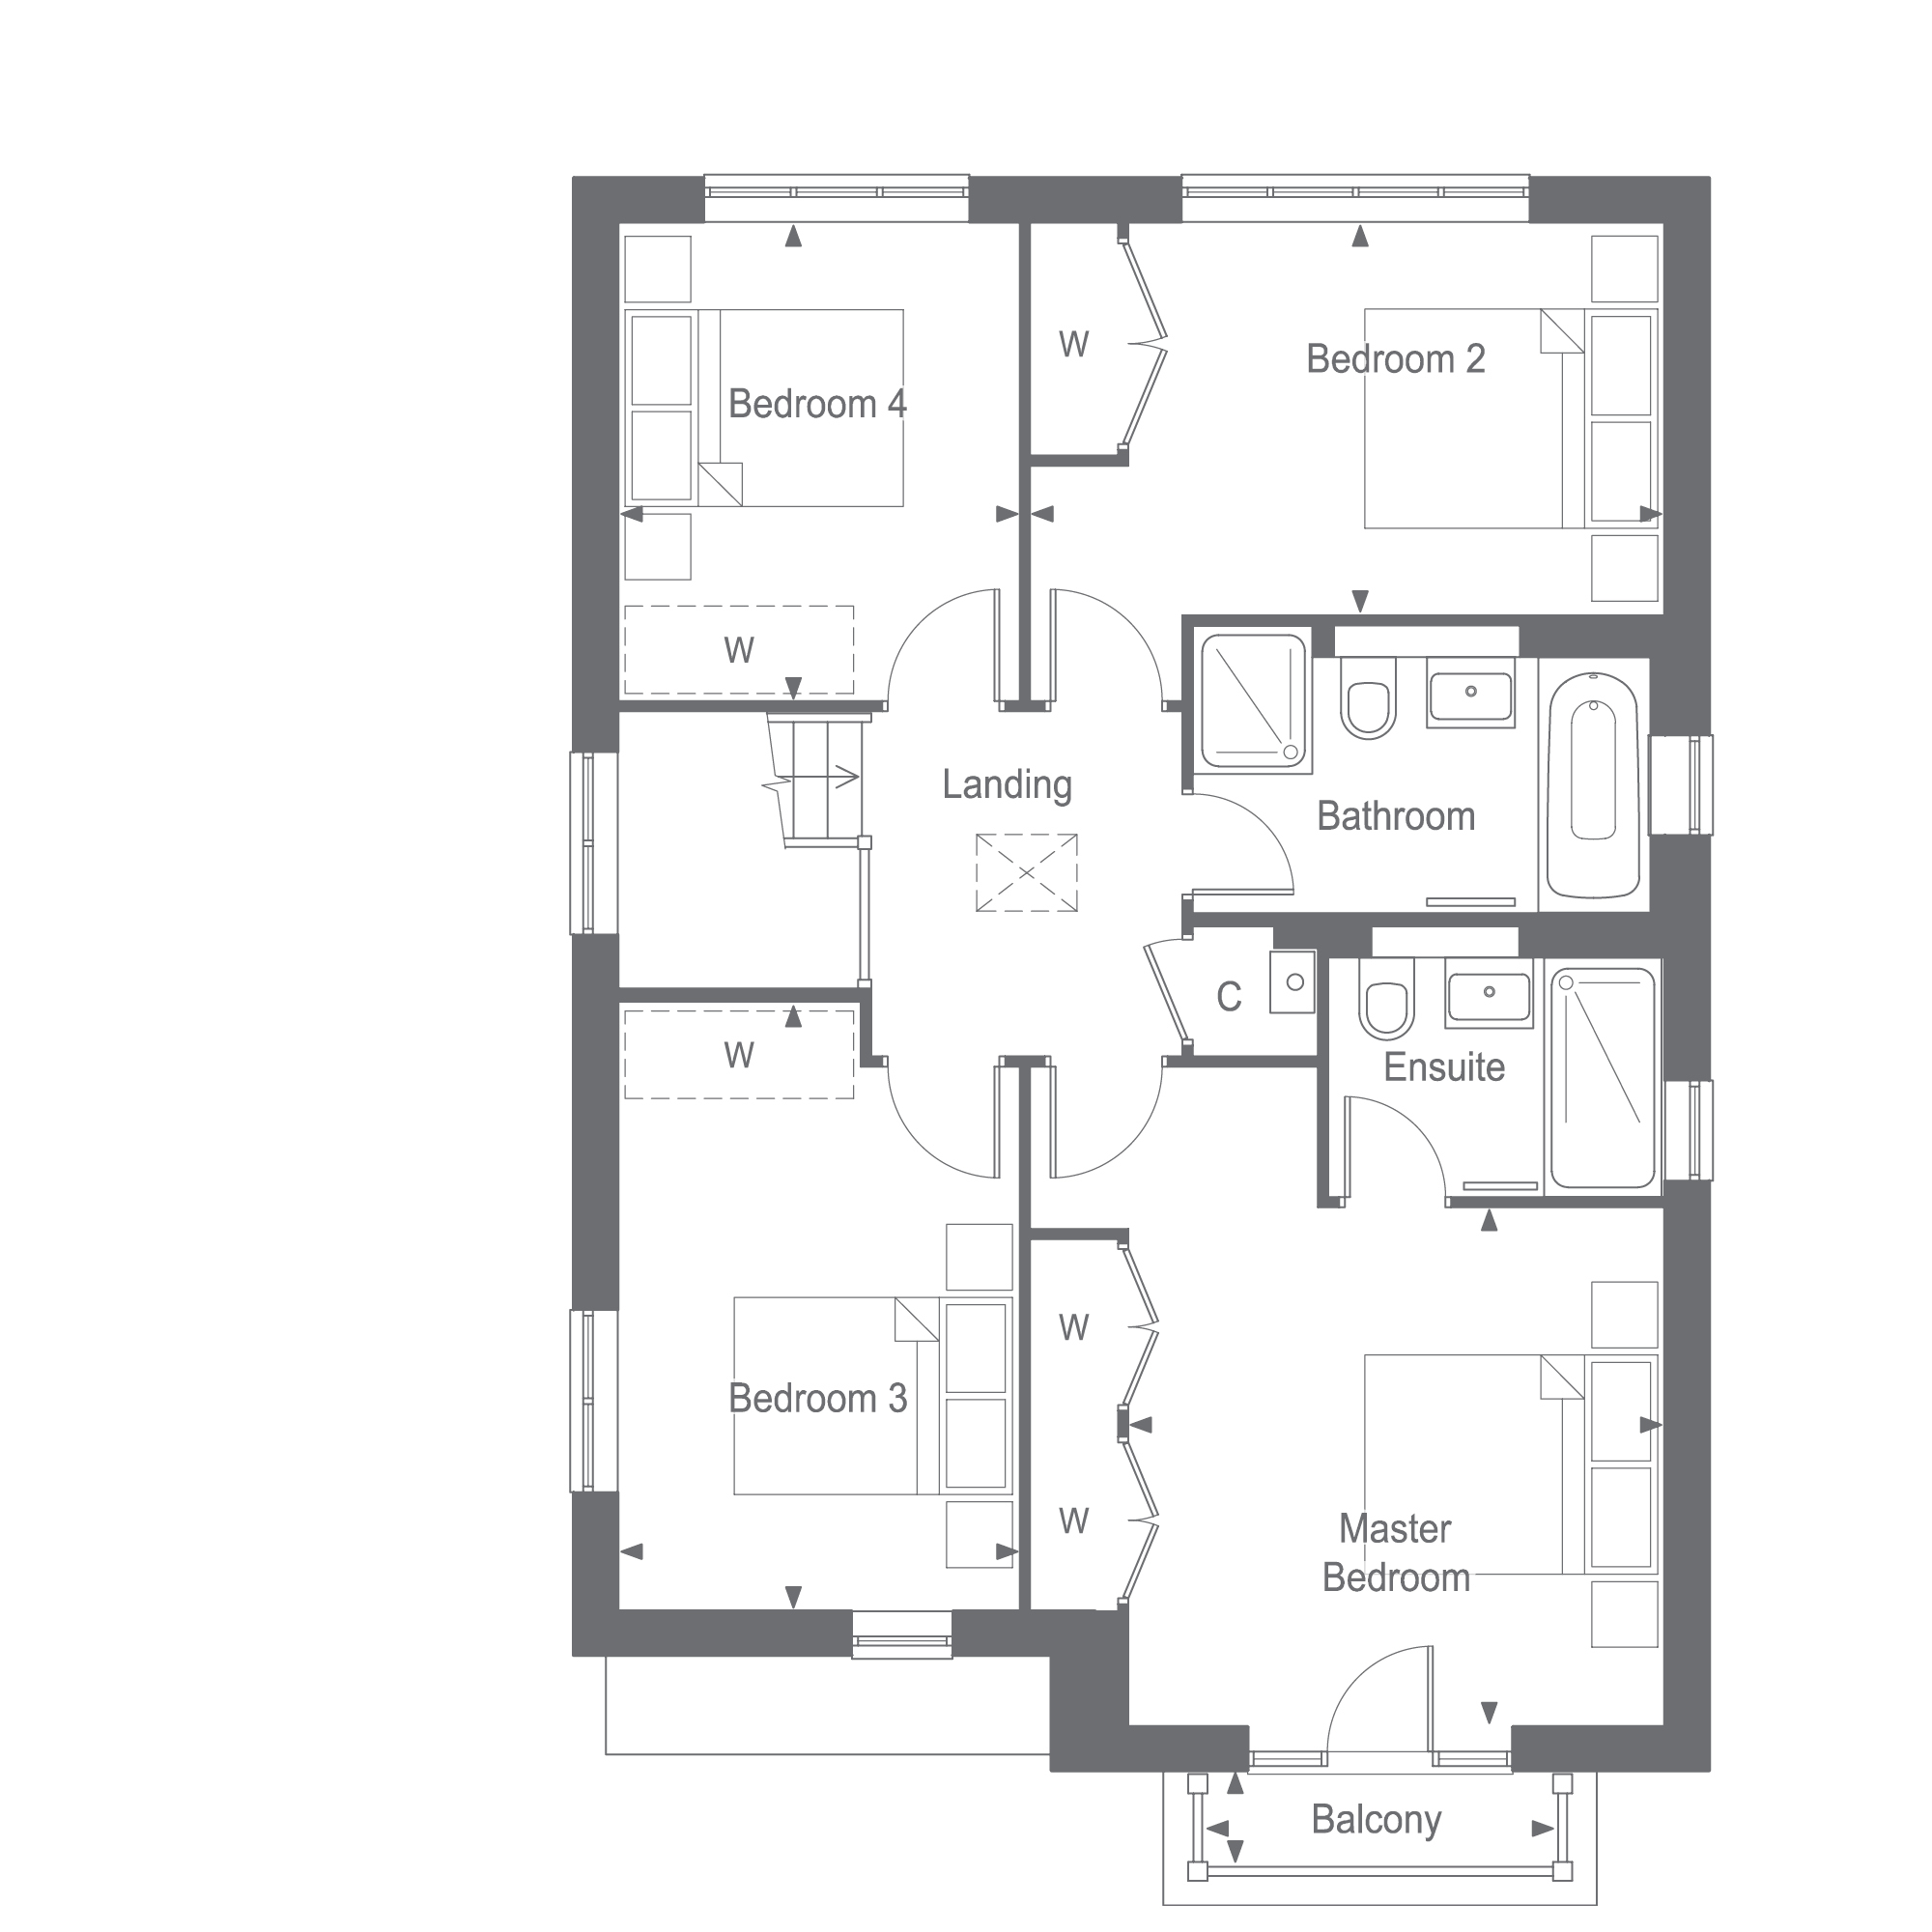 The Bramber First Floor Plan, Woodgate at Pease Pottage